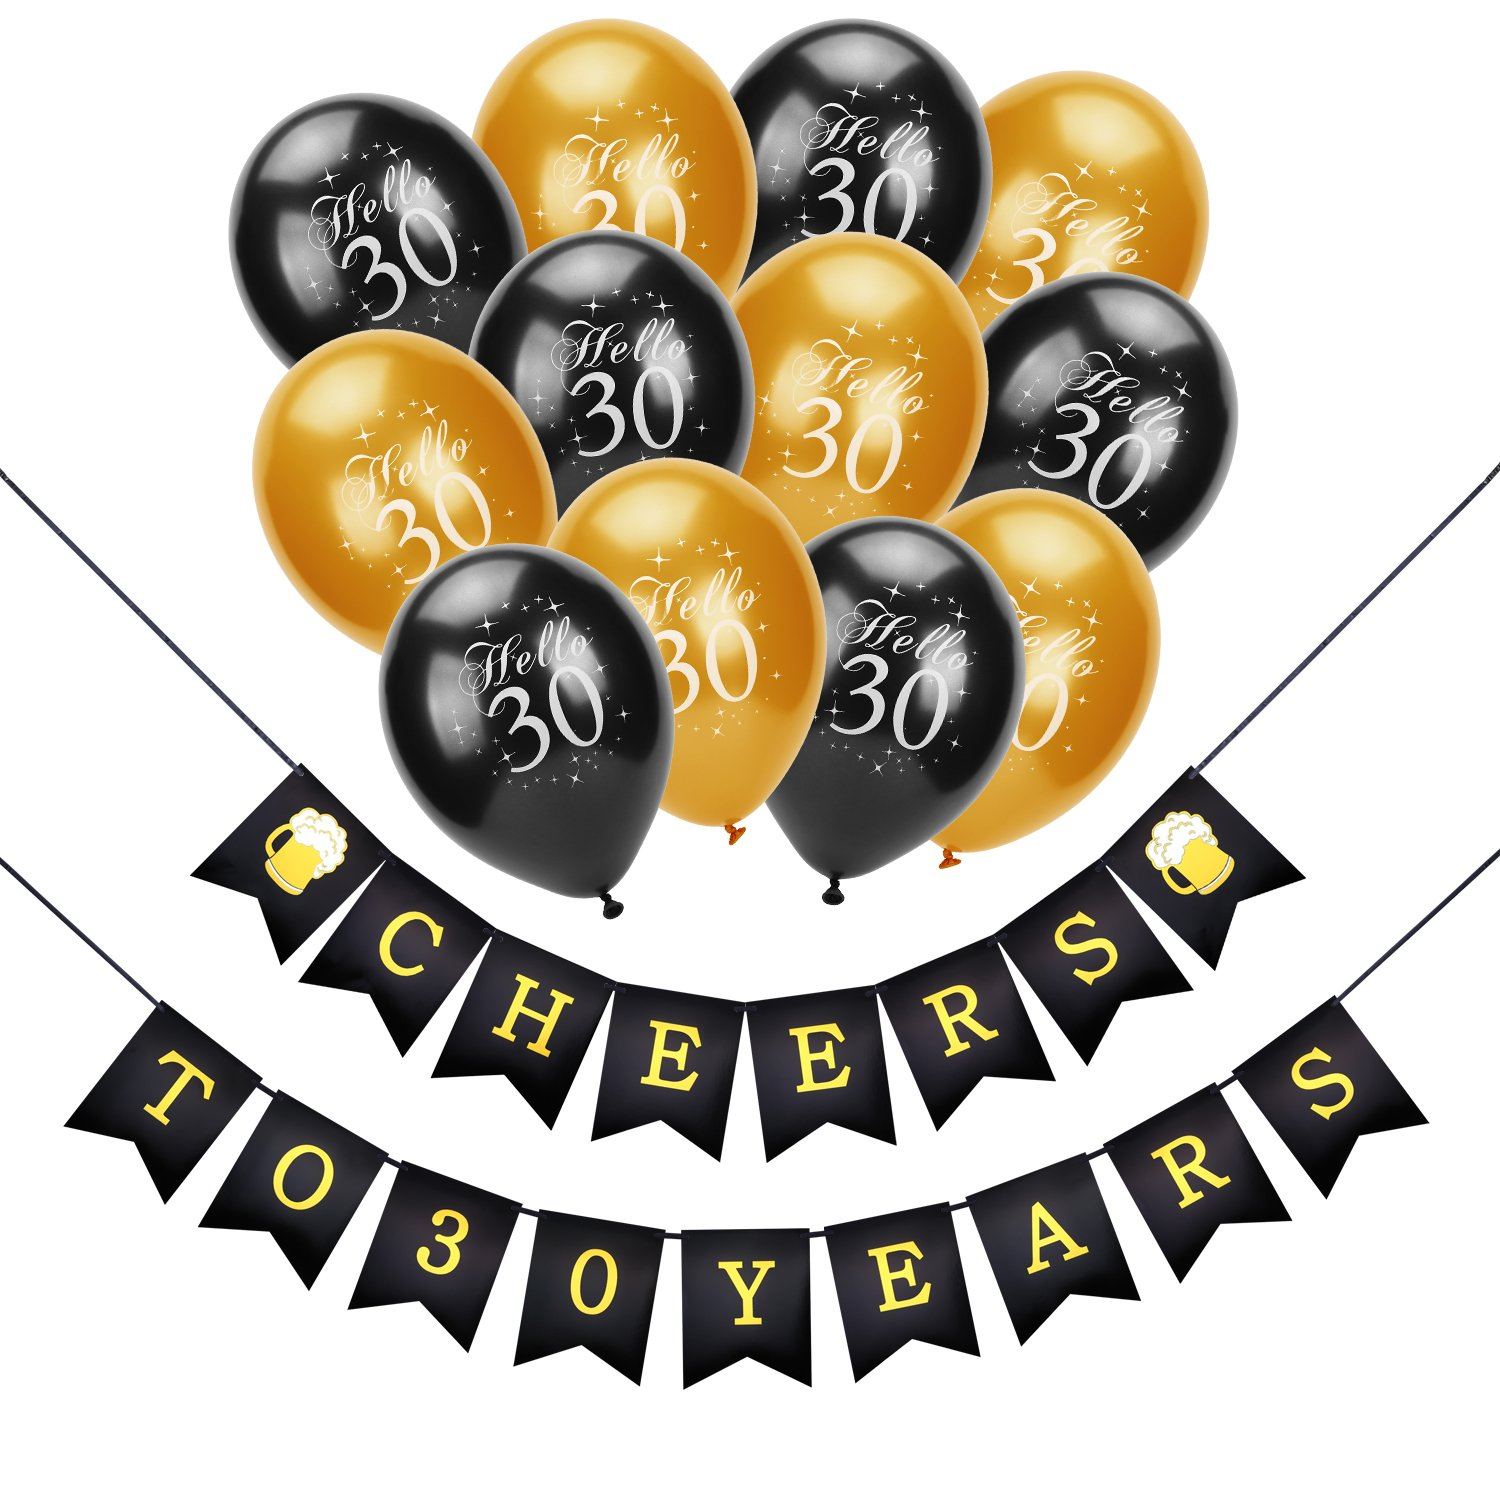 Birthday Decoration Cheers To 30 BannerHello Balloons Black And Goldfor Man Women Celebration 30th For Years Old